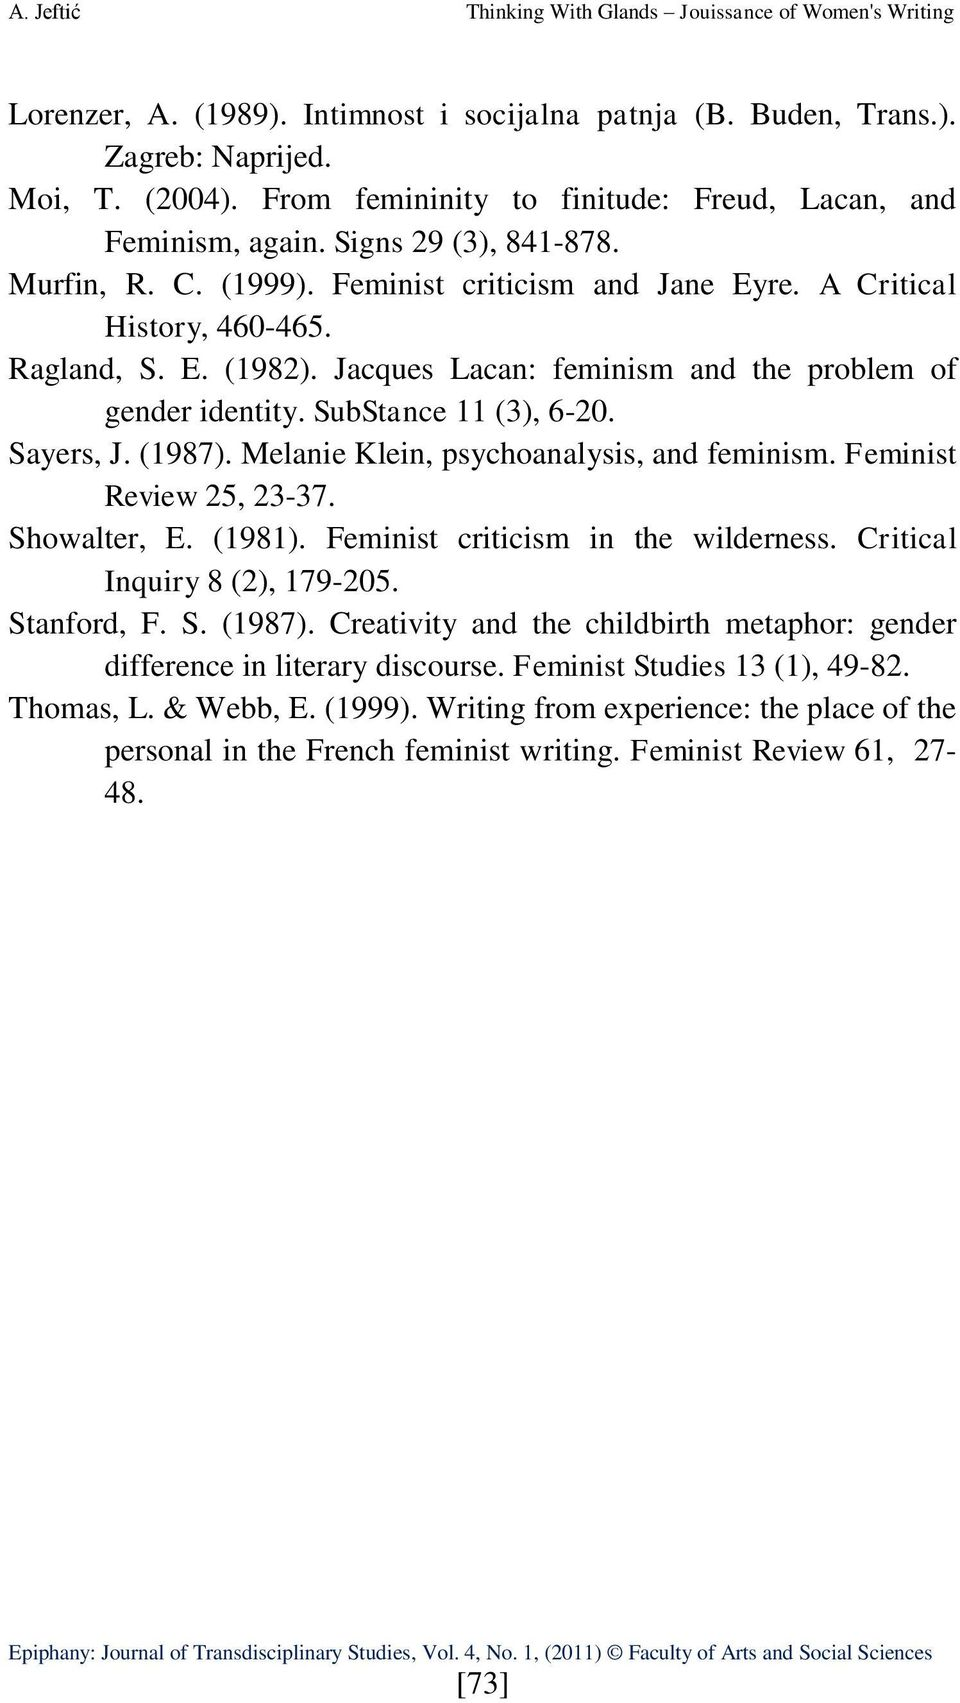 Gender differences in discourse essay